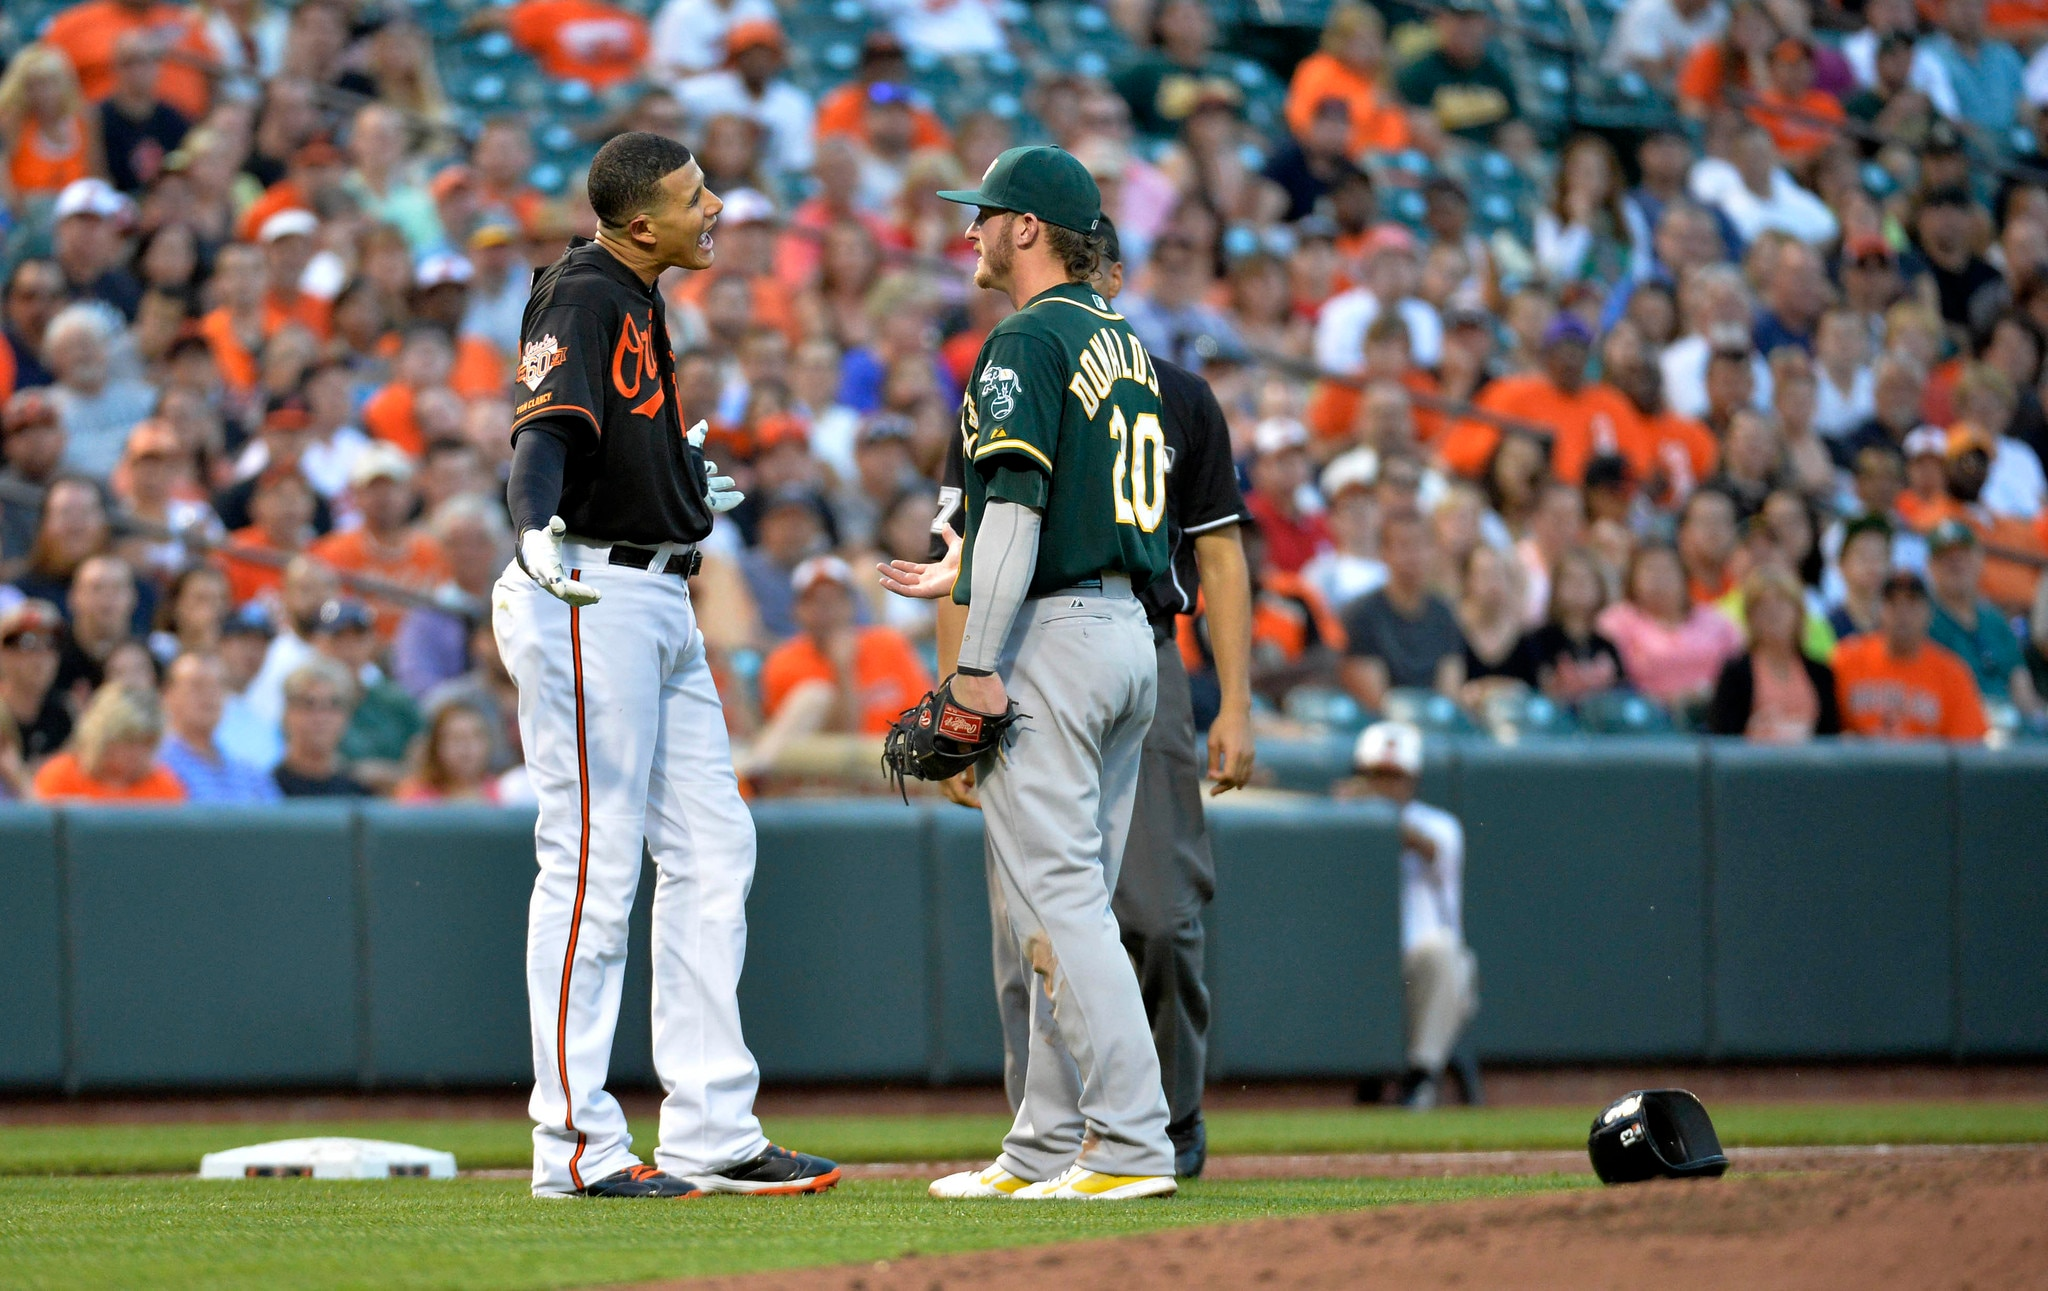 Courtesy of the Baltimore Sun: The bat-throwing incident comes two days after Macahdo and Donaldson got into it.